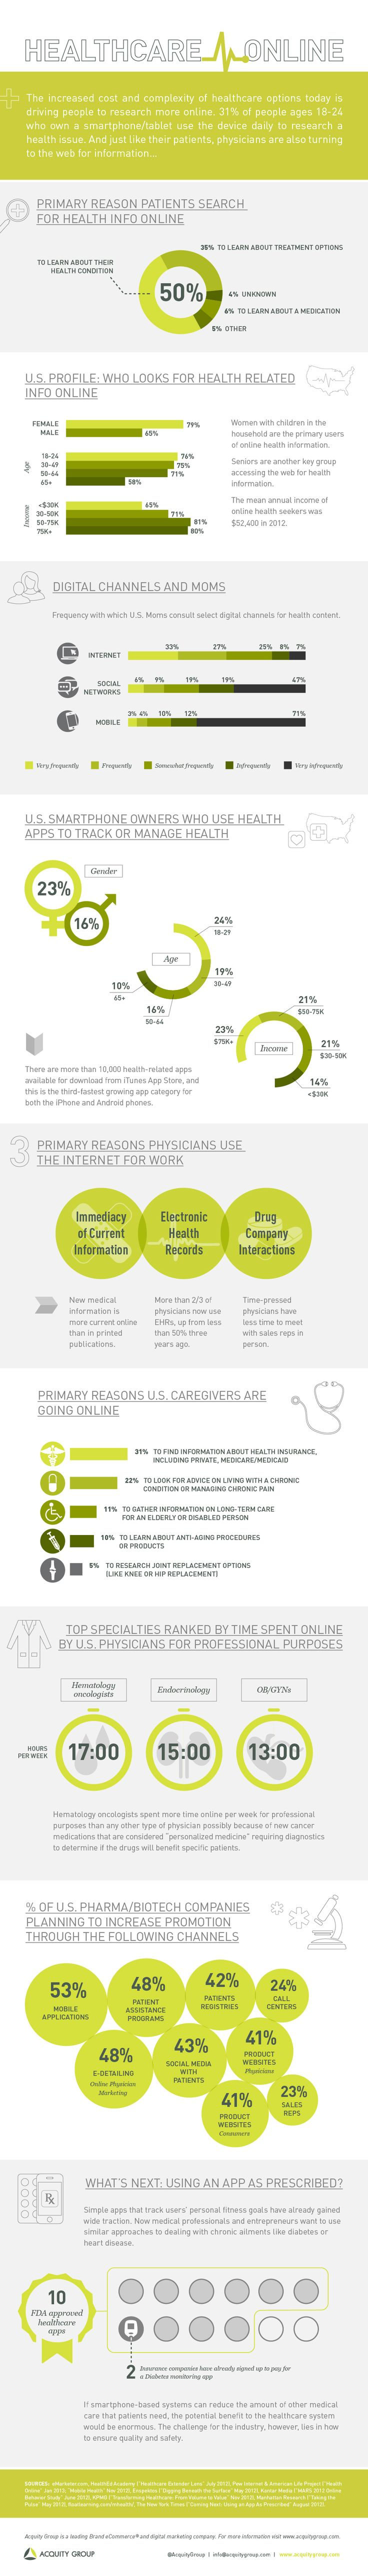 Healthcare Online | The increased cost and complexity of healthcare options today is driving people to research more online. 31% of people ages 18-24 who own a smartphone/tablet use the device daily to research a health issue. And just like their patients, physicians are also turning to the web for information. #healthcare #pharmamktg #hcsm #hcmktg #healthIT #mHealth